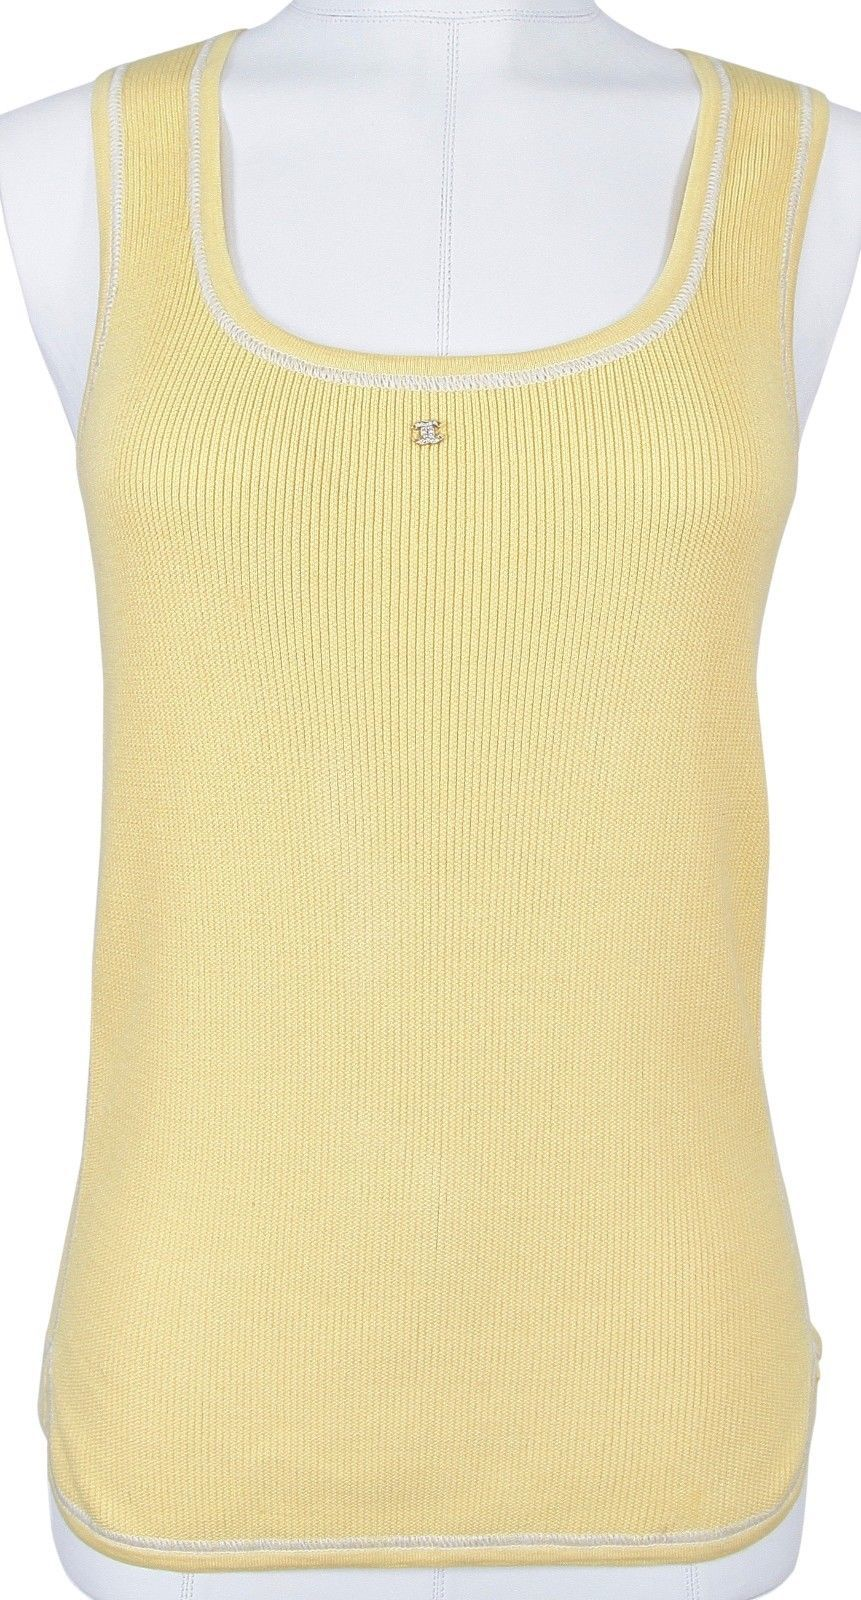 f9110b541b31b CHANEL Top Shirt Knit Sleeveless Yellow and similar items. S l1600